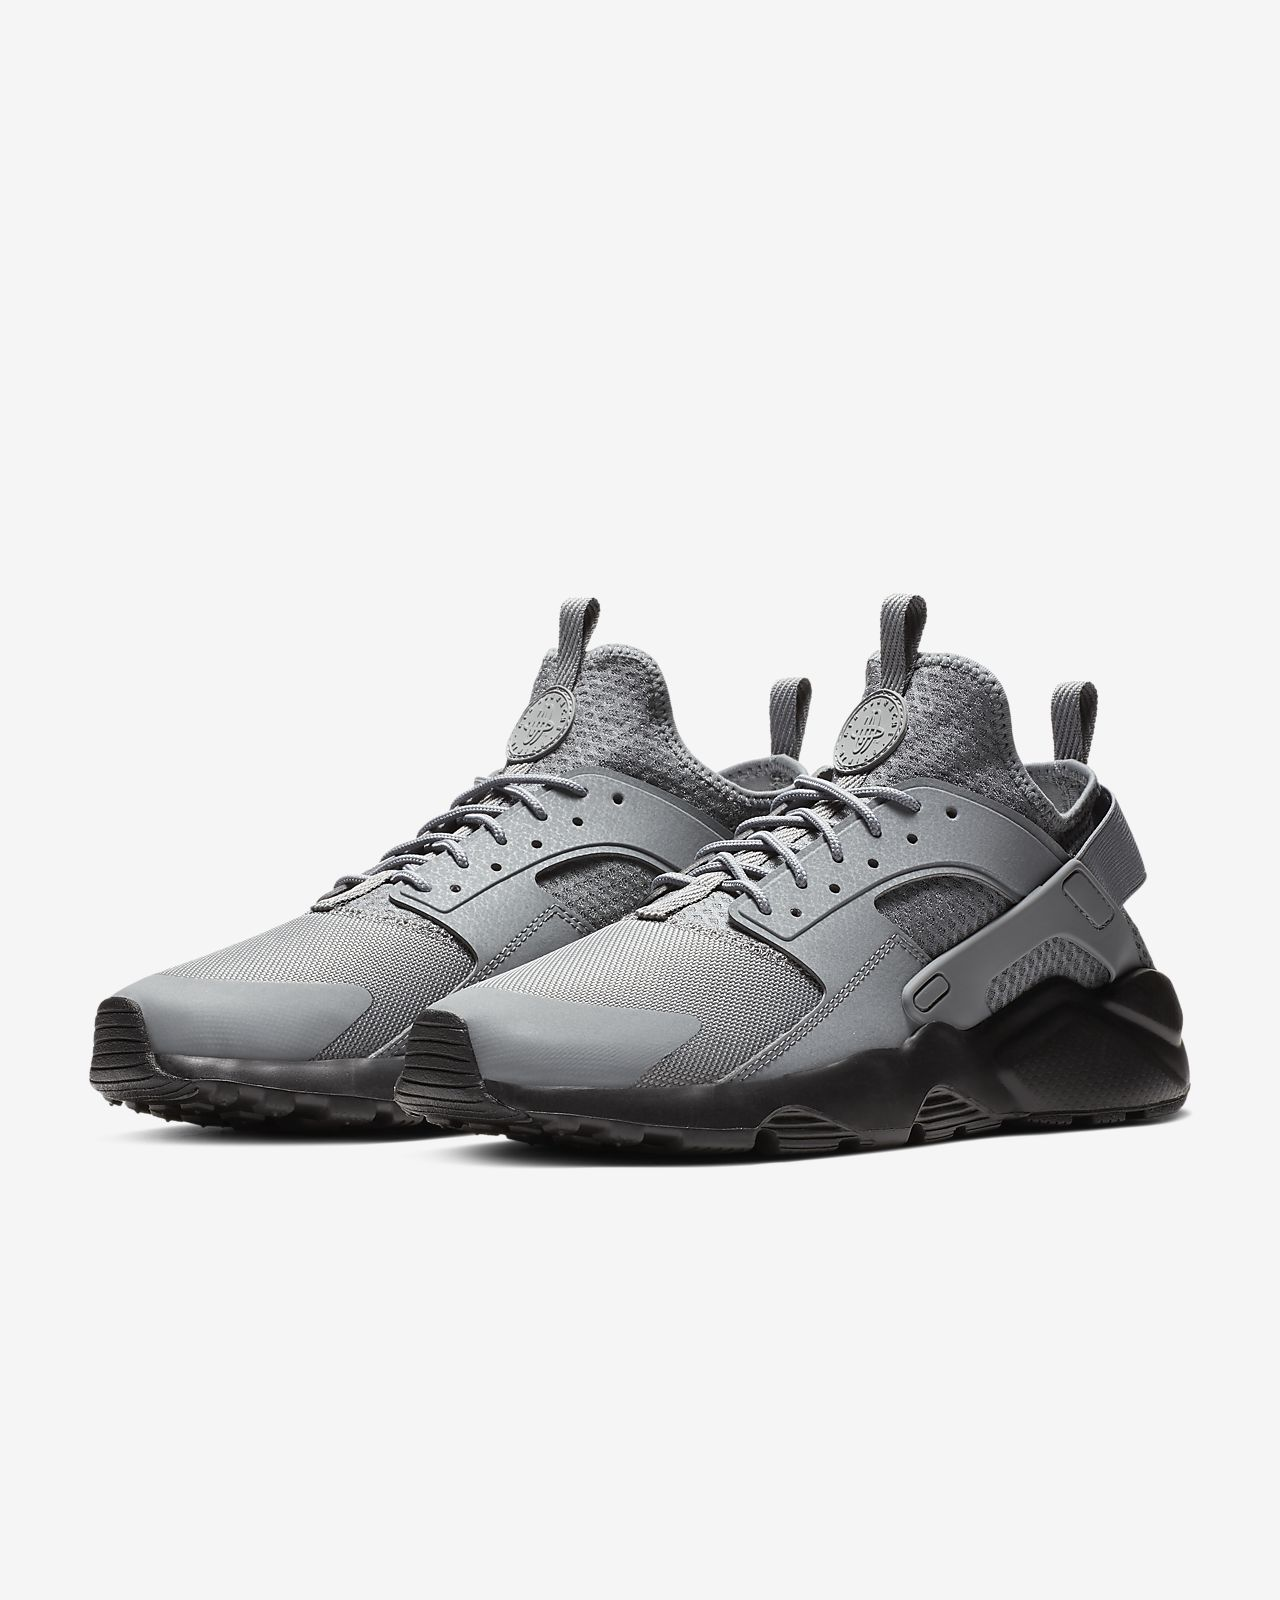 It Nike Run Uomo Ultra Scarpa Air Huarache xYwdA78qU